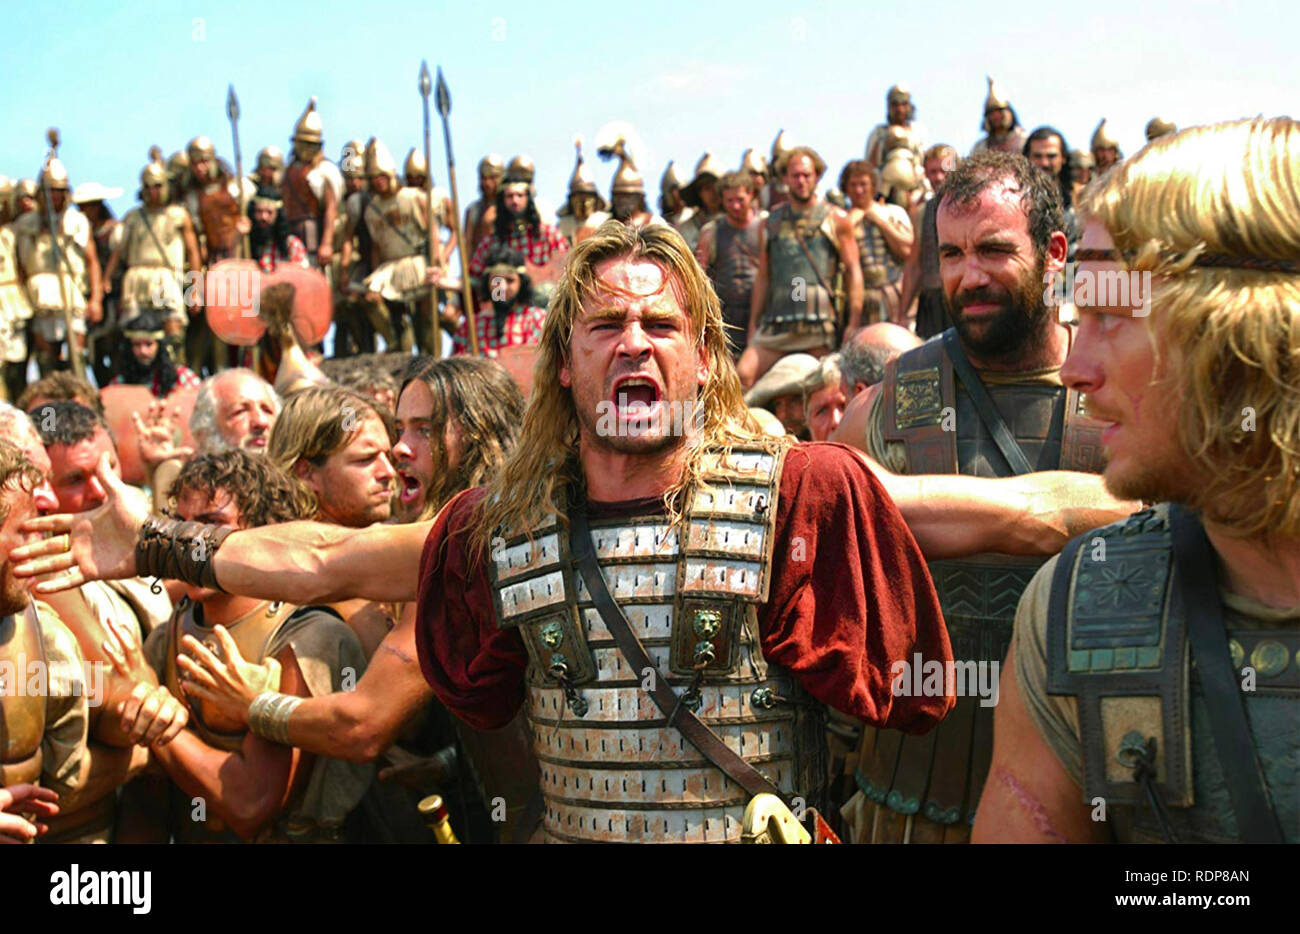 ALEXANDER 2004 Warner Bros film with Colin Farrell as Alexander the Great - Stock Image